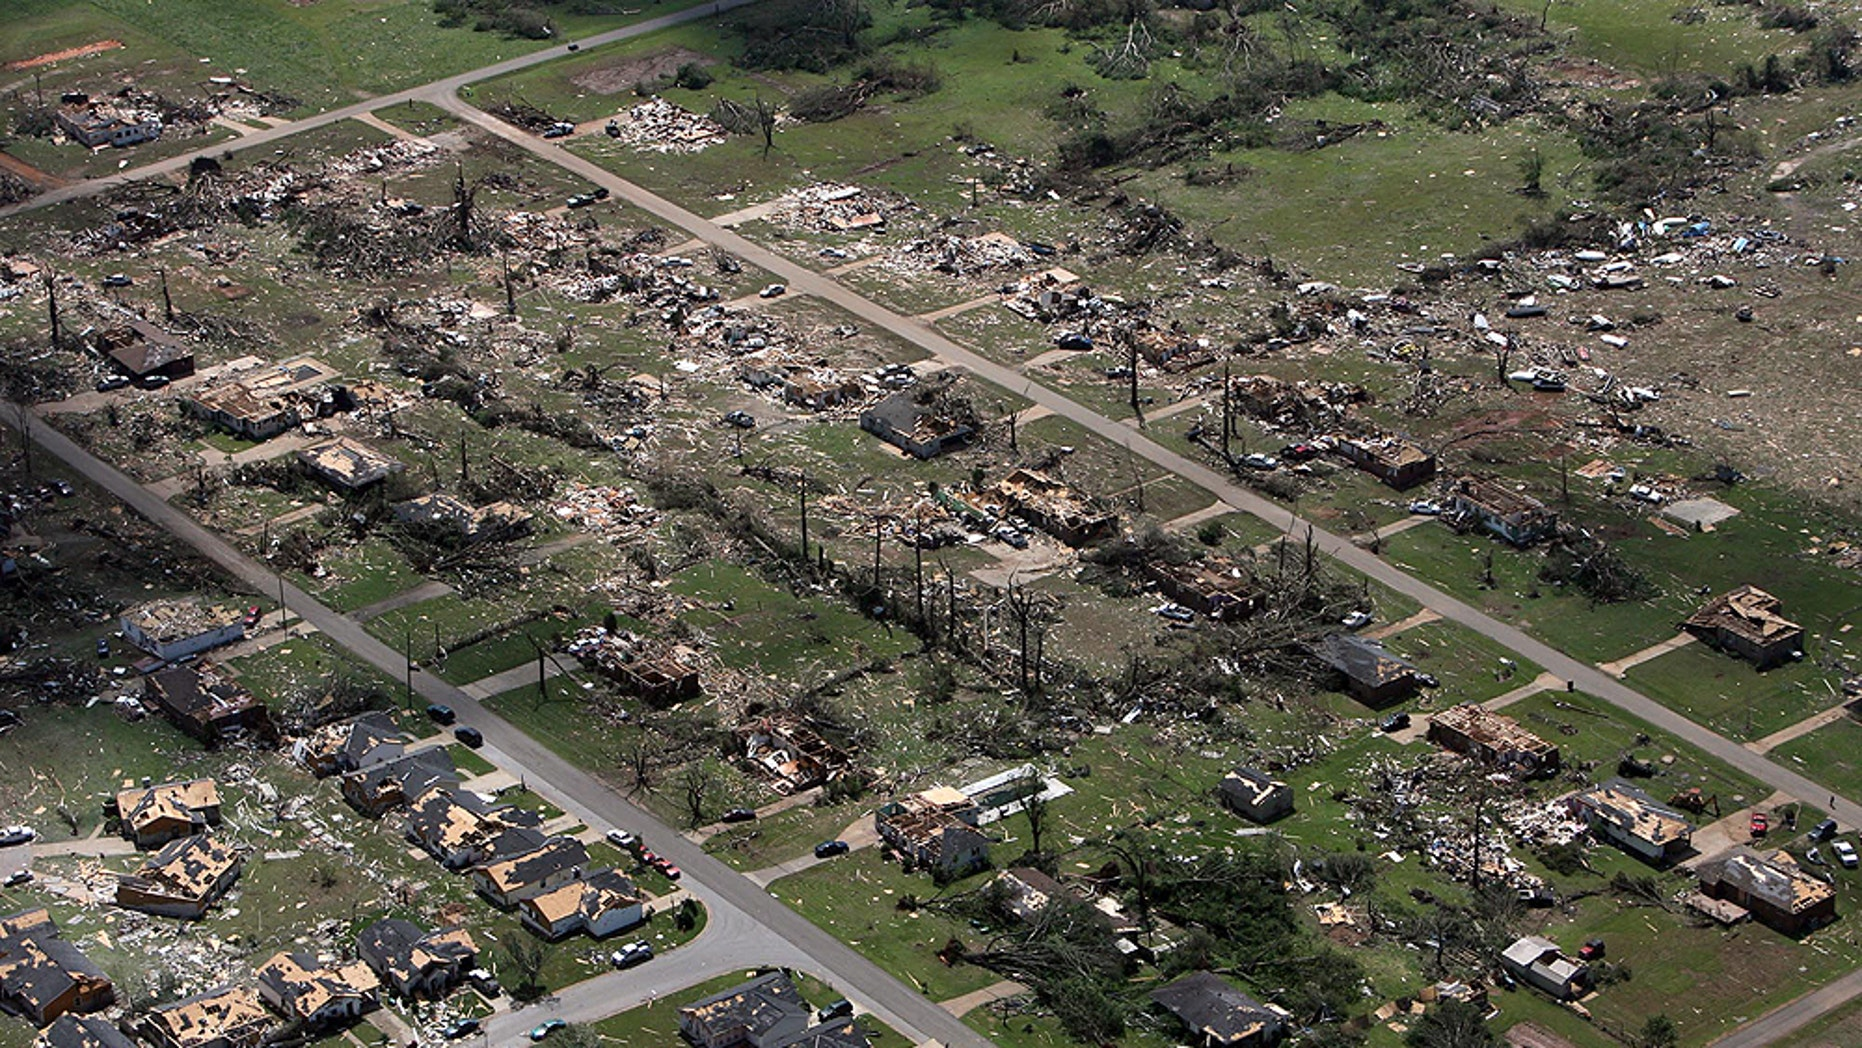 April 28: This aerial photo shows the devastation of  homes in Cottondale, Ala. sustained heavy damage.